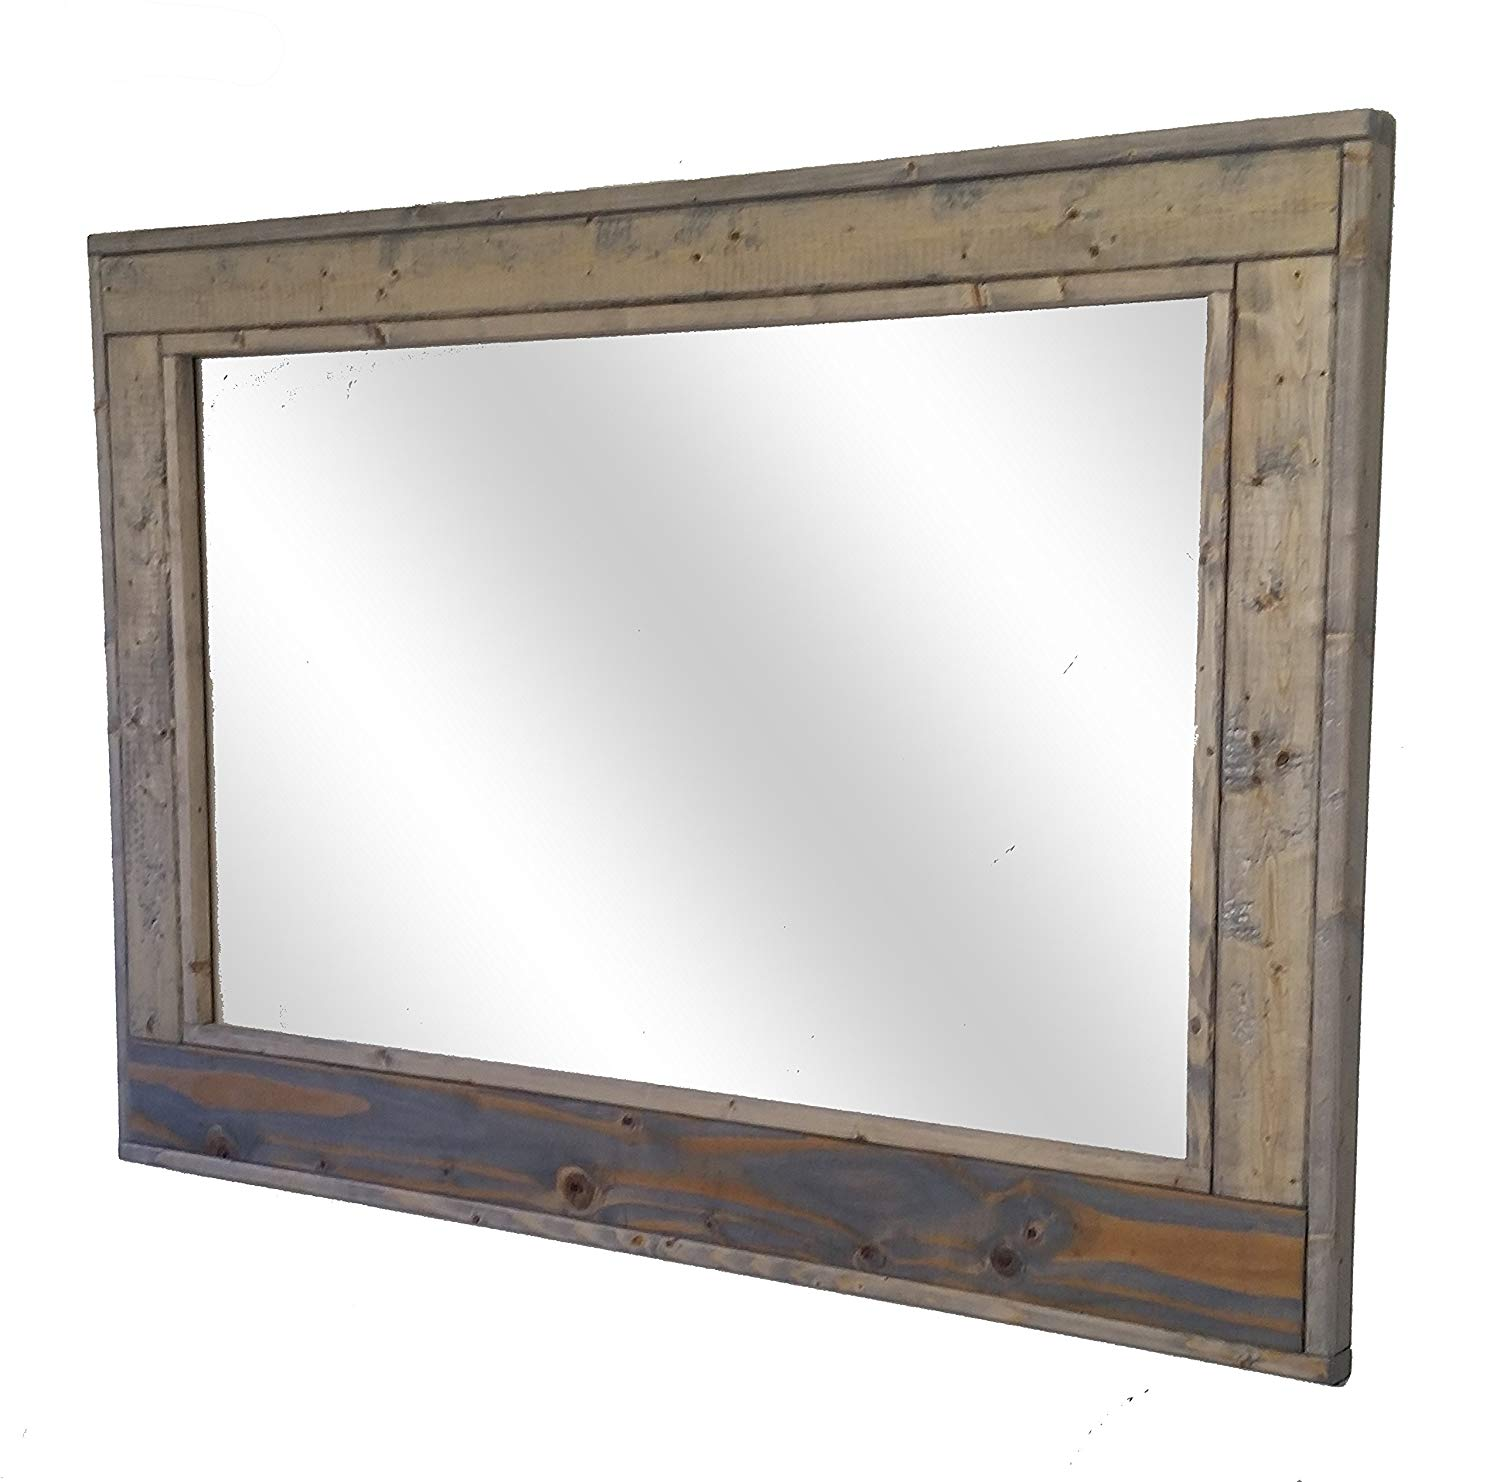 Get Quotations Herringbone Large Mirror 42 X 30 Horizontal Framed Stained In Weathered Oak Reclaimed Wood